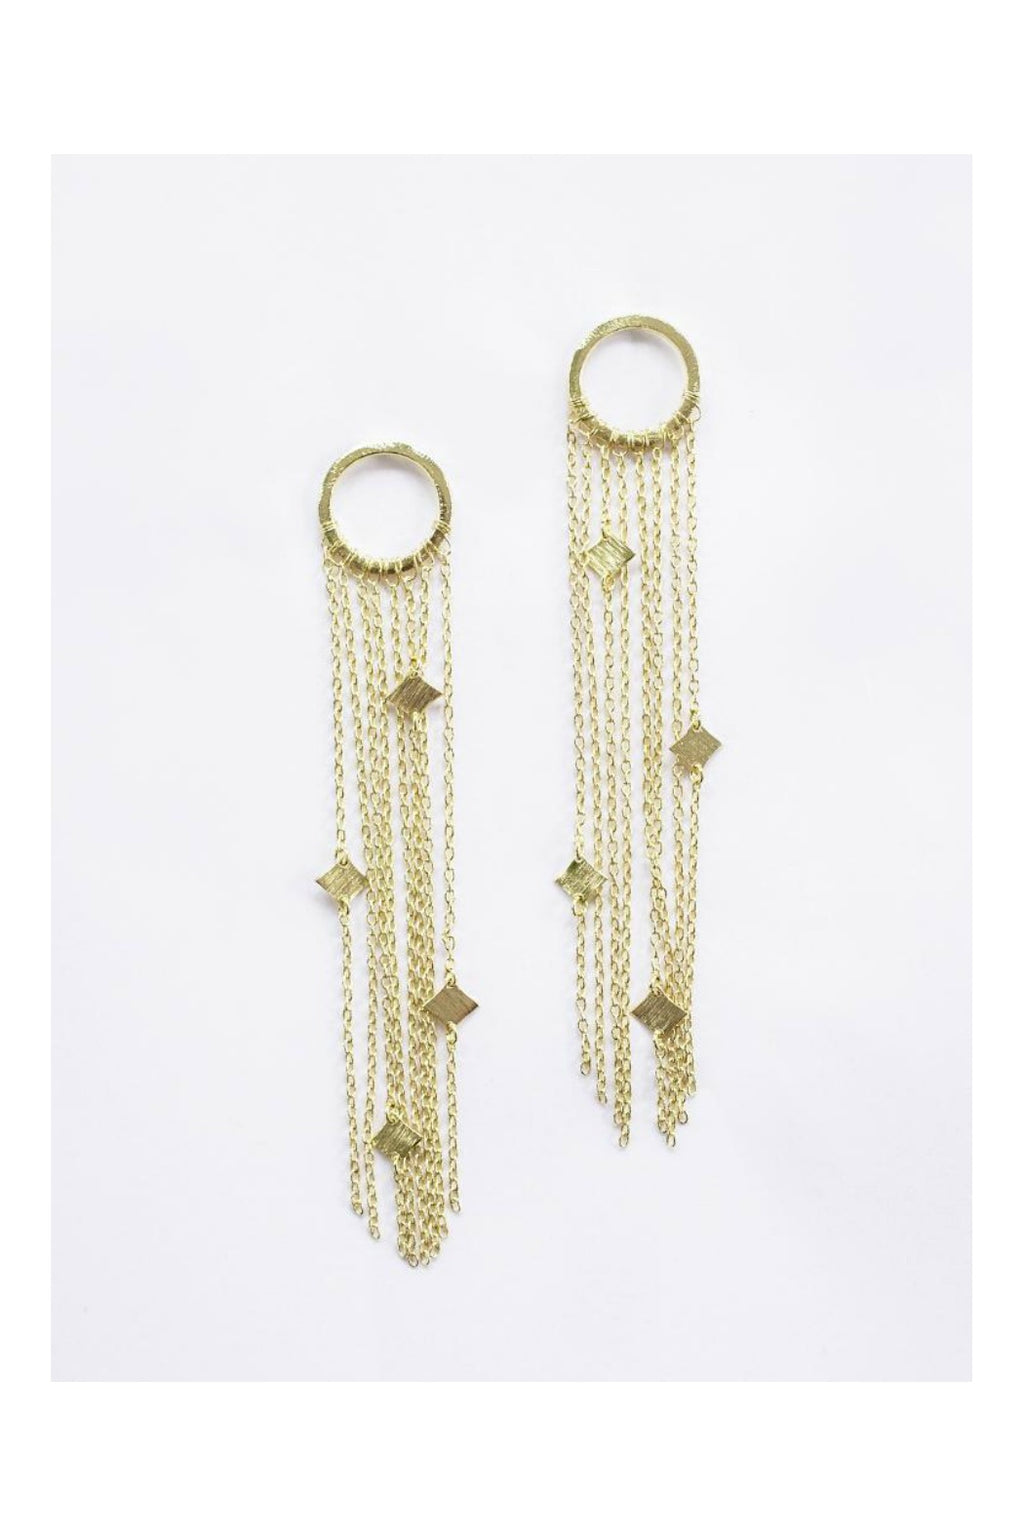 Mata Traders Hannah Duster Earrings